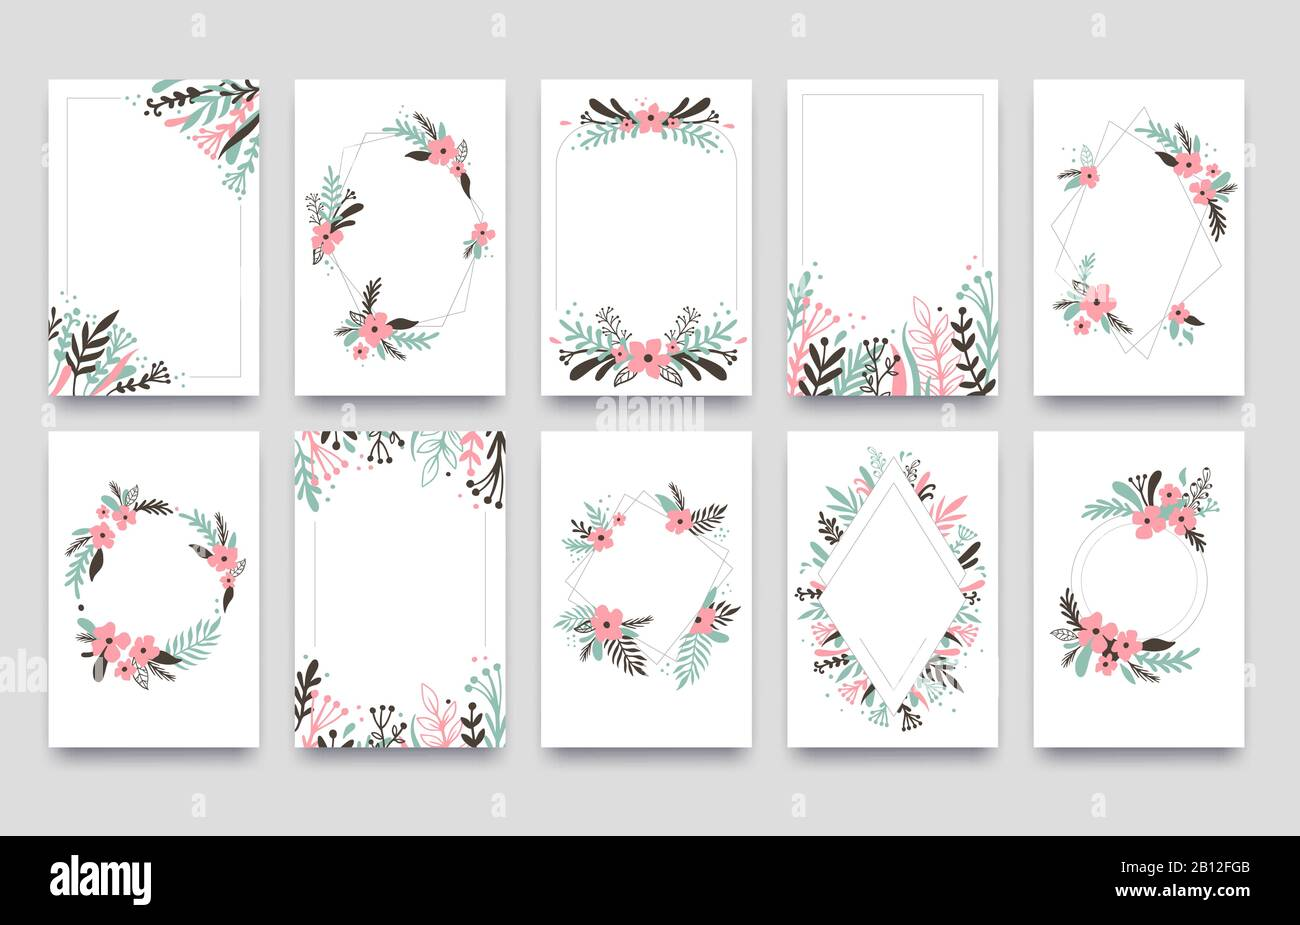 floral ornament invitation card willow leafs frame border ornaments frames corners and ornamental twig wedding cards vector template stock vector image art alamy https www alamy com floral ornament invitation card willow leafs frame border ornaments frames corners and ornamental twig wedding cards vector template image344878139 html